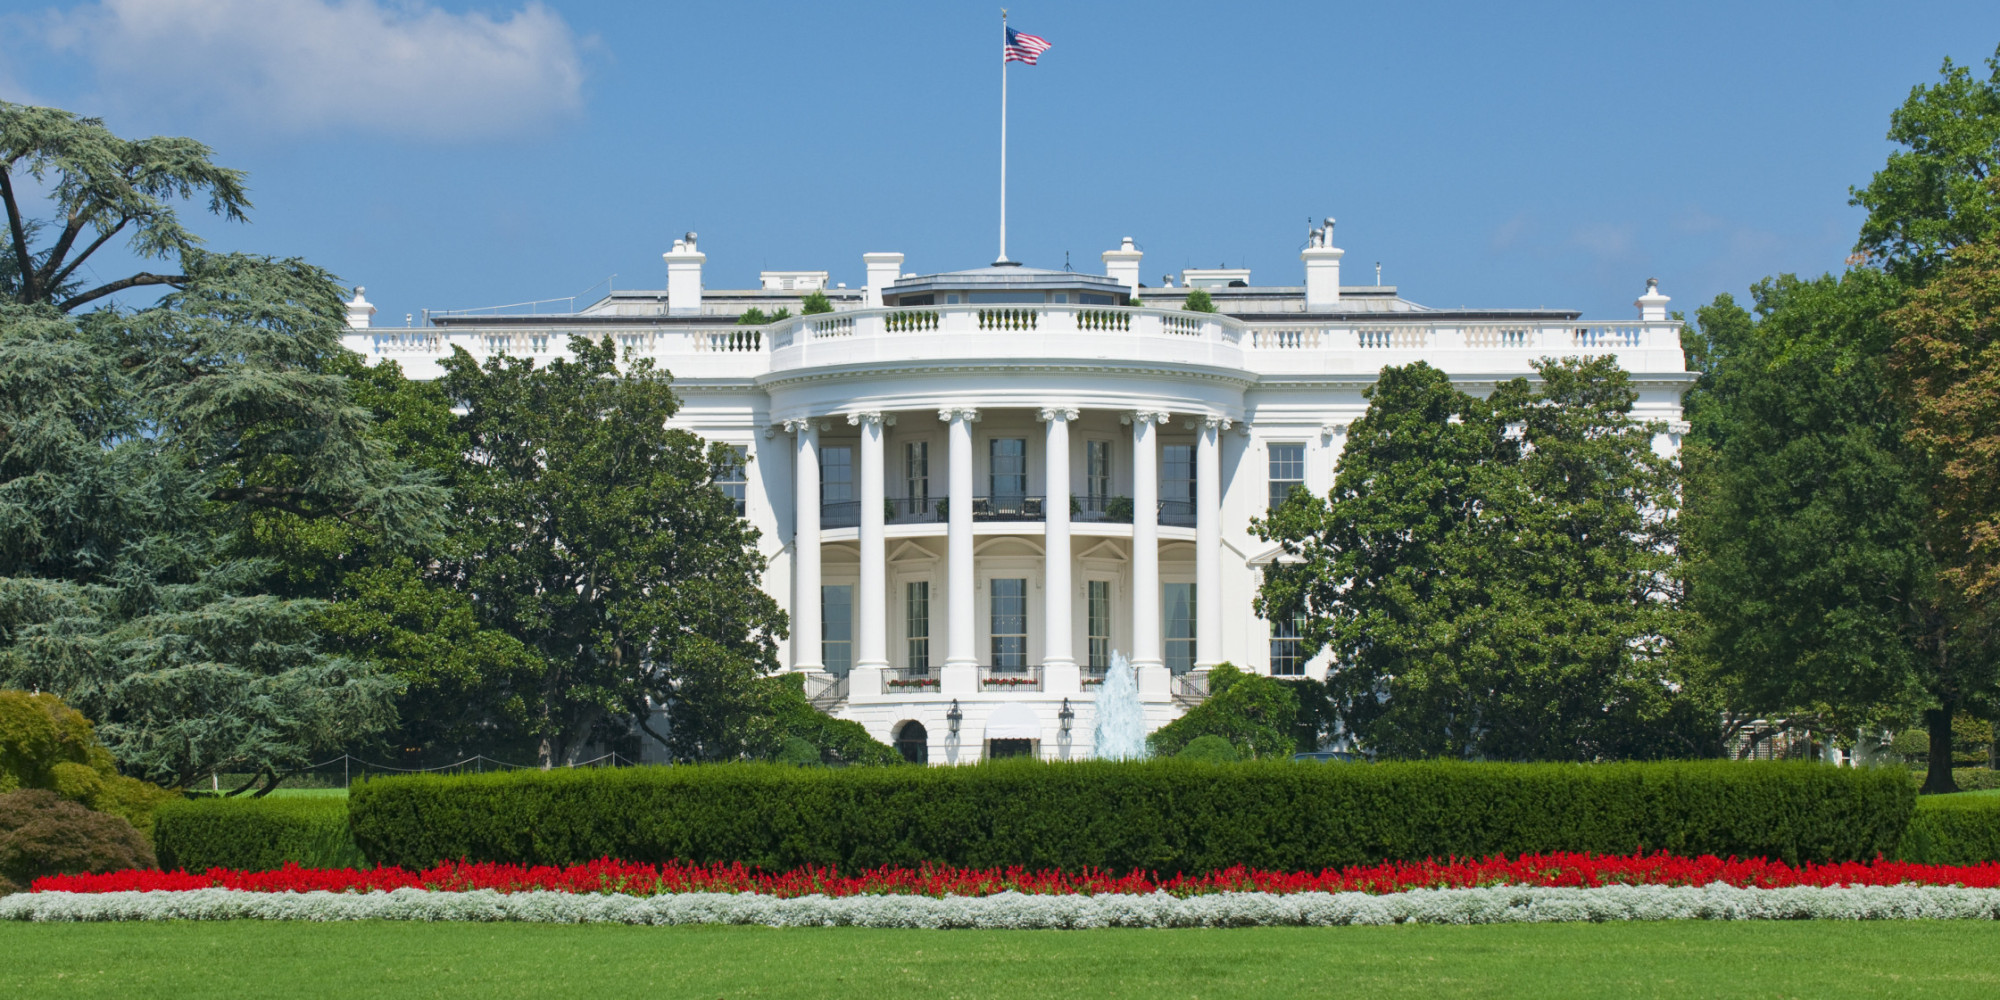 Game Design Takes Teen from High School to White House